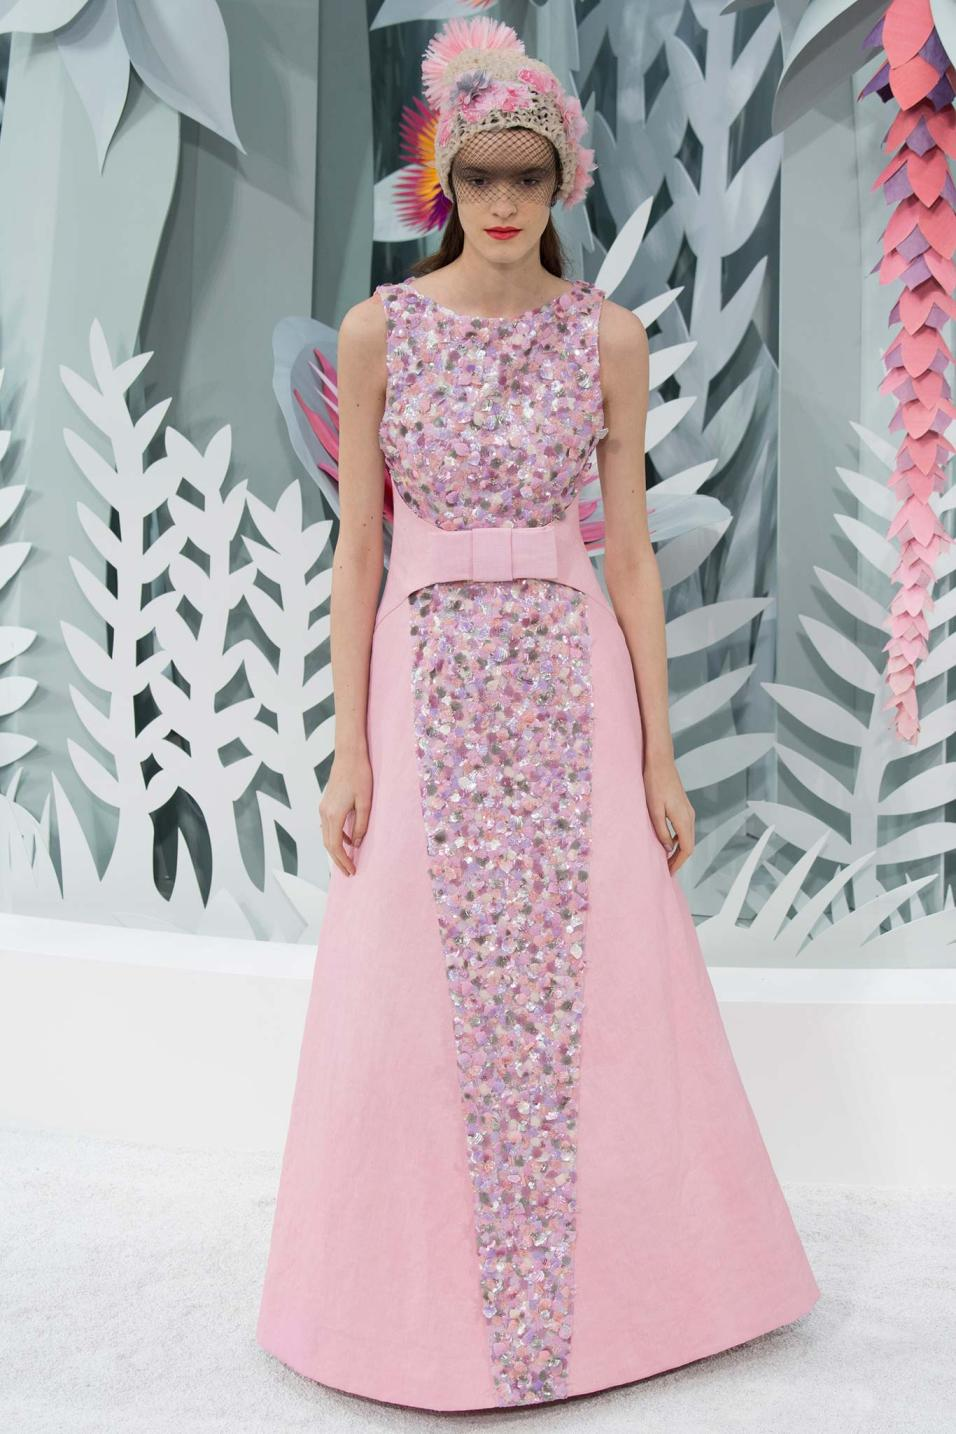 Chanel haute couture spring 2015 17 style blog for Chanel haute couture price range